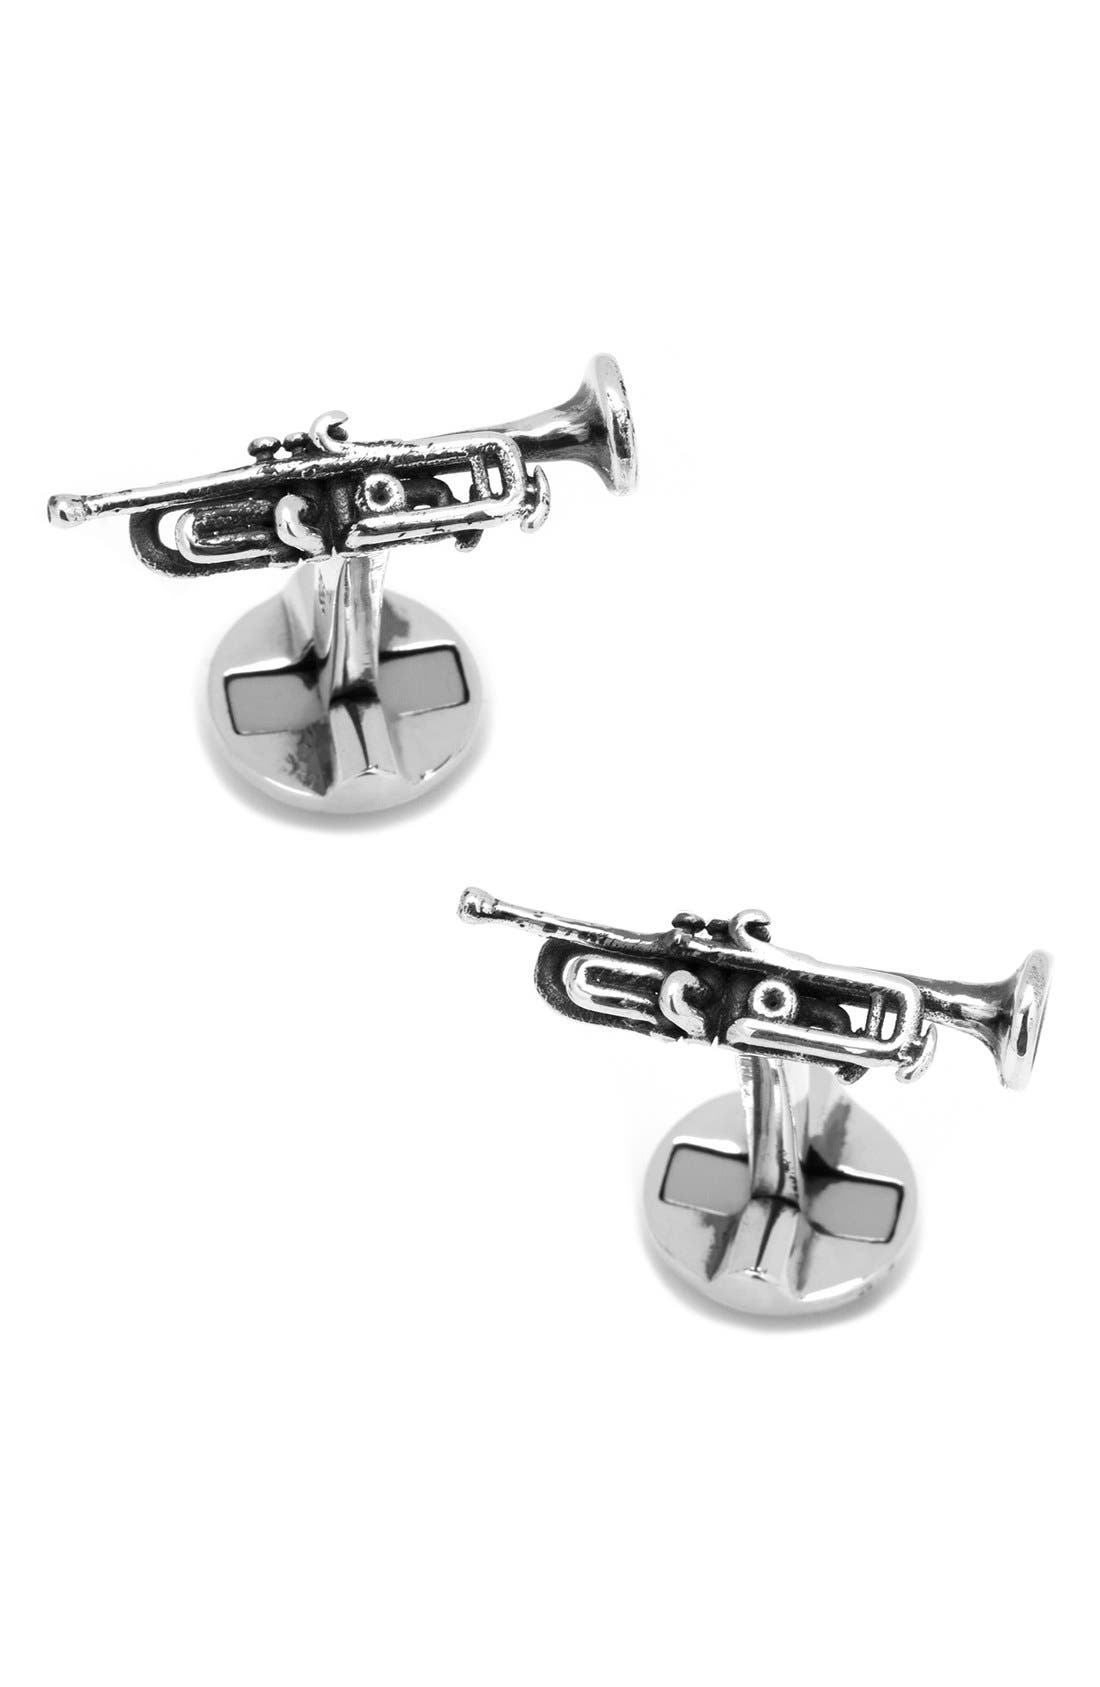 OX AND BULL TRADING CO. Trumpet Cuff Links